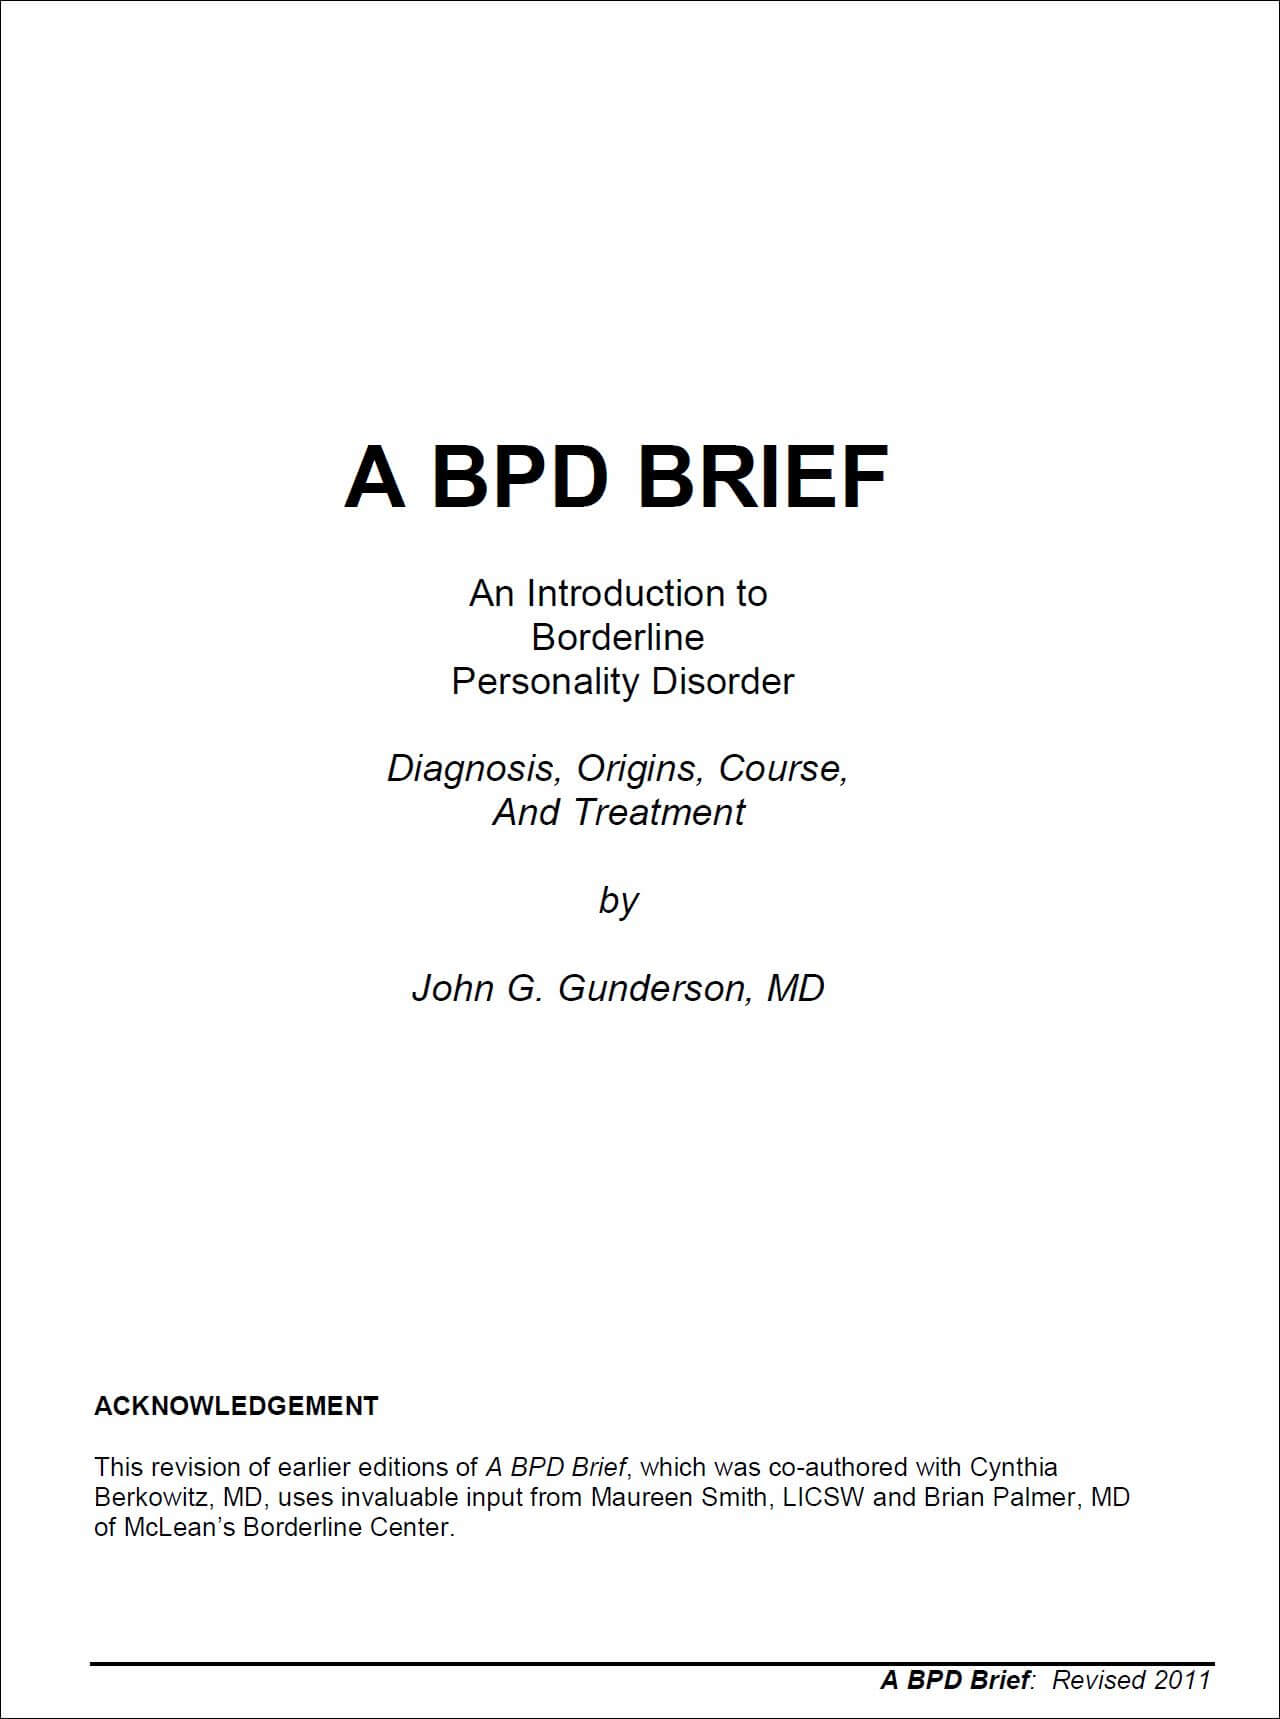 borderline personality disorder bpd essay According to john grohol, borderline personality disorder, or bpd, is a pervasive pattern of instability in interpersonal relationships, self-image and emotions (john m grohol, 2010) those that are inflicted have little control over their emotions, are likely to exhibit destructive behaviors, and tend to have low self-esteem.